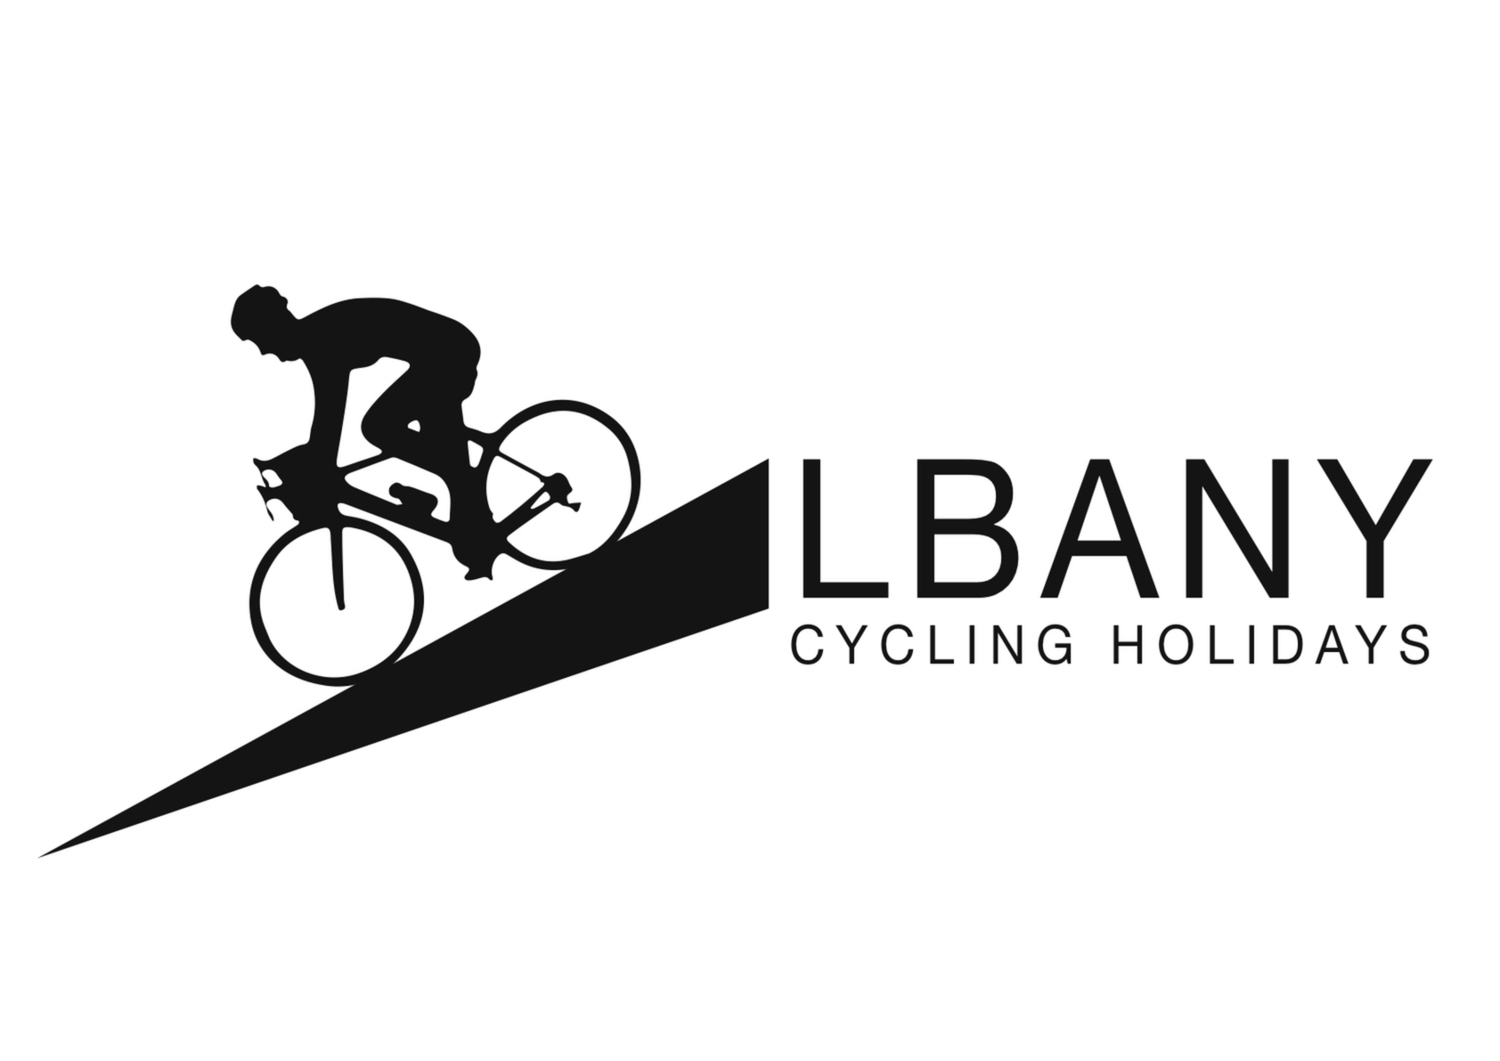 Bikes for the Trail and Albany Cycling Holidays